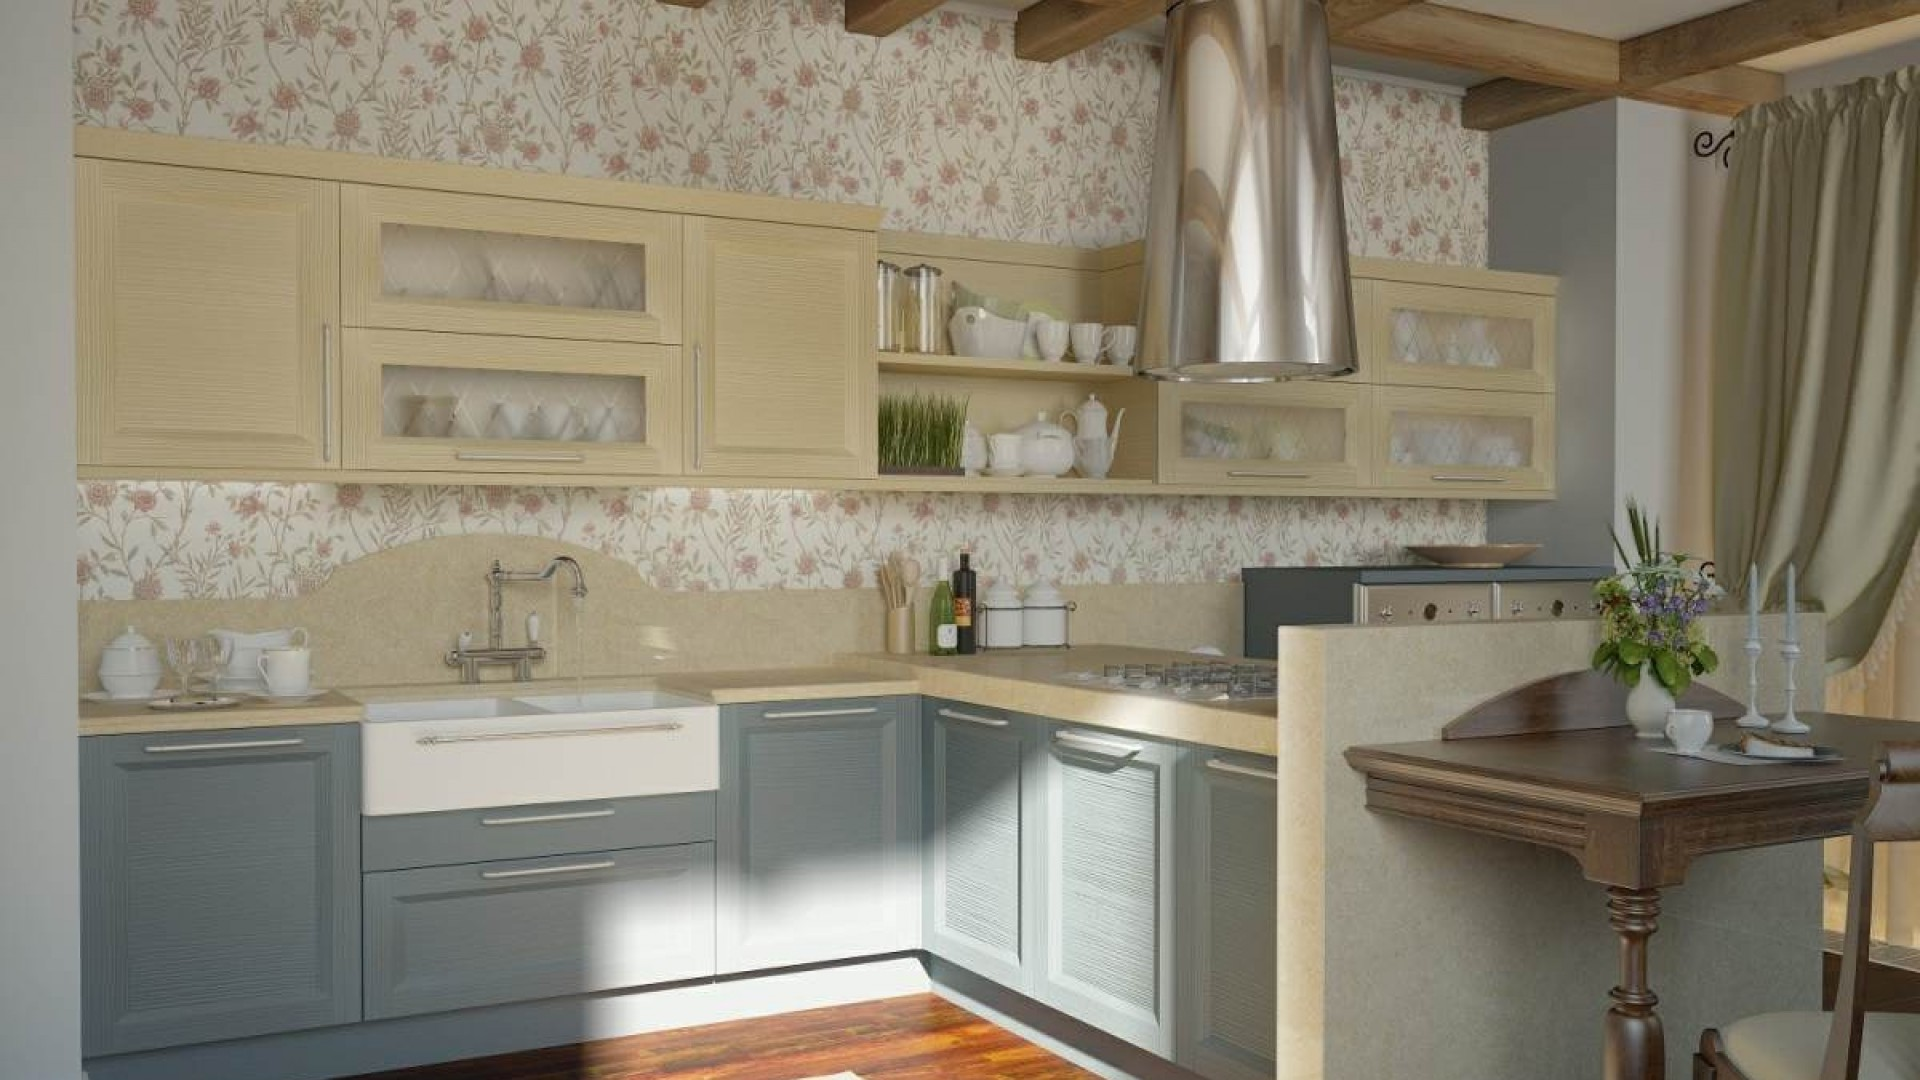 40 Most Beautiful Kitchen Wallpapers For Free Download